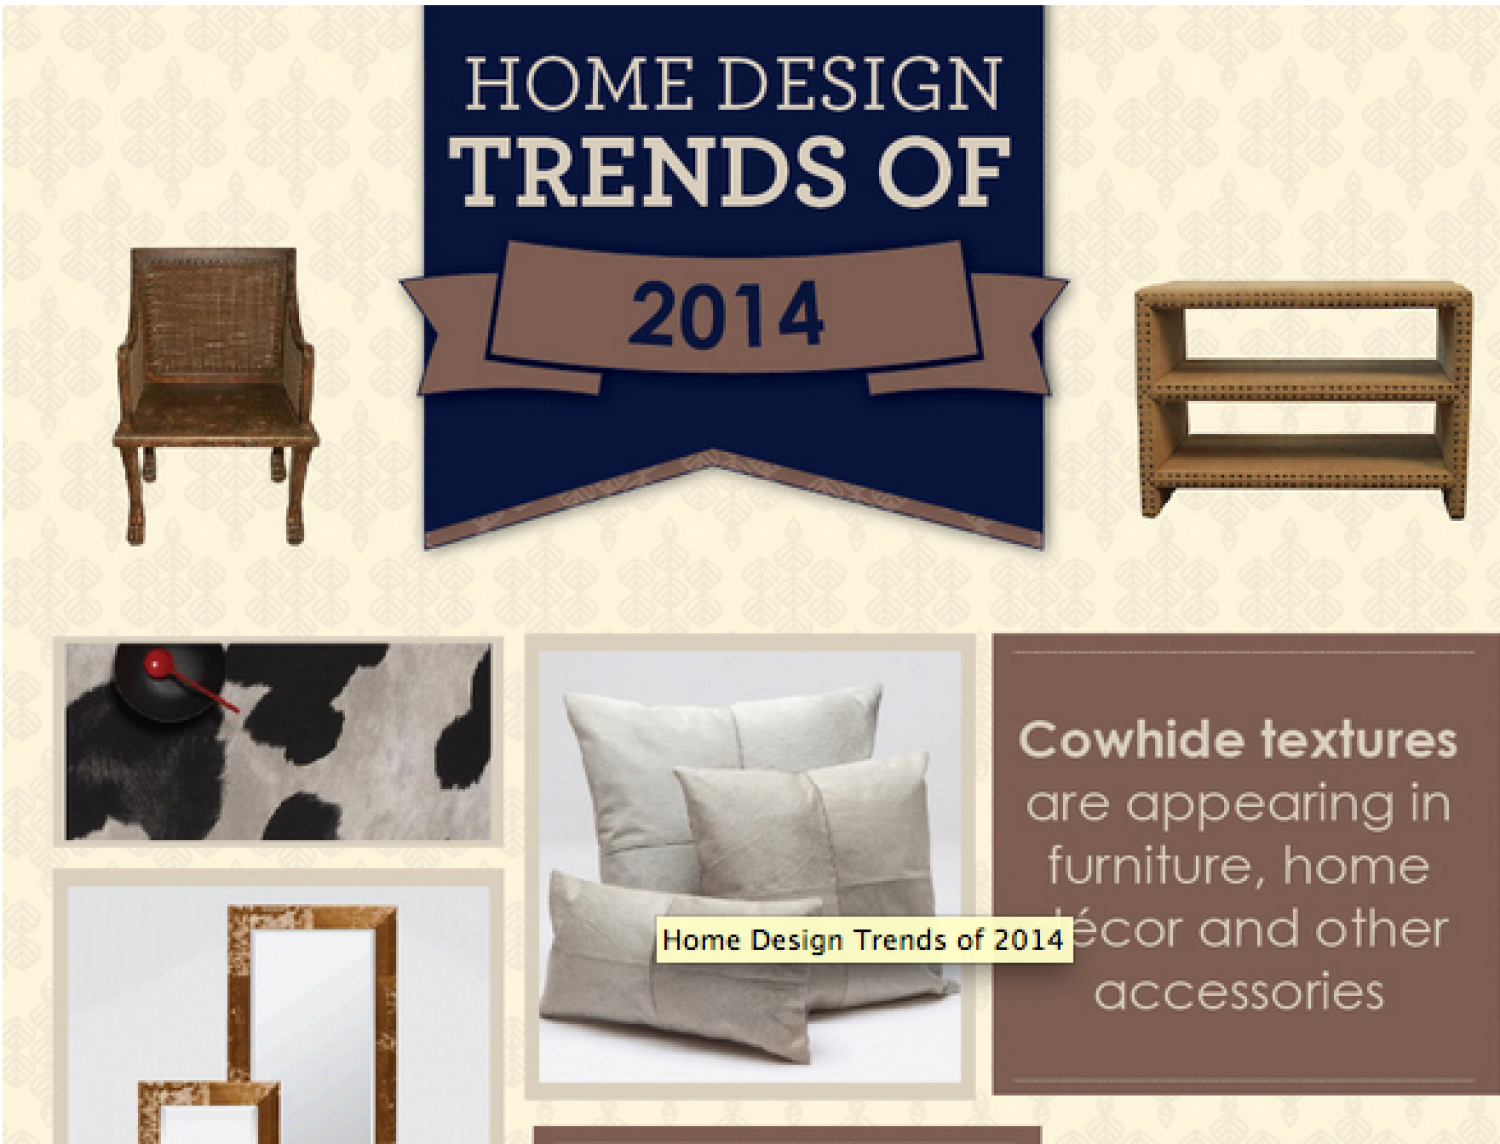 Hone Design Trends of 2014 Infographic